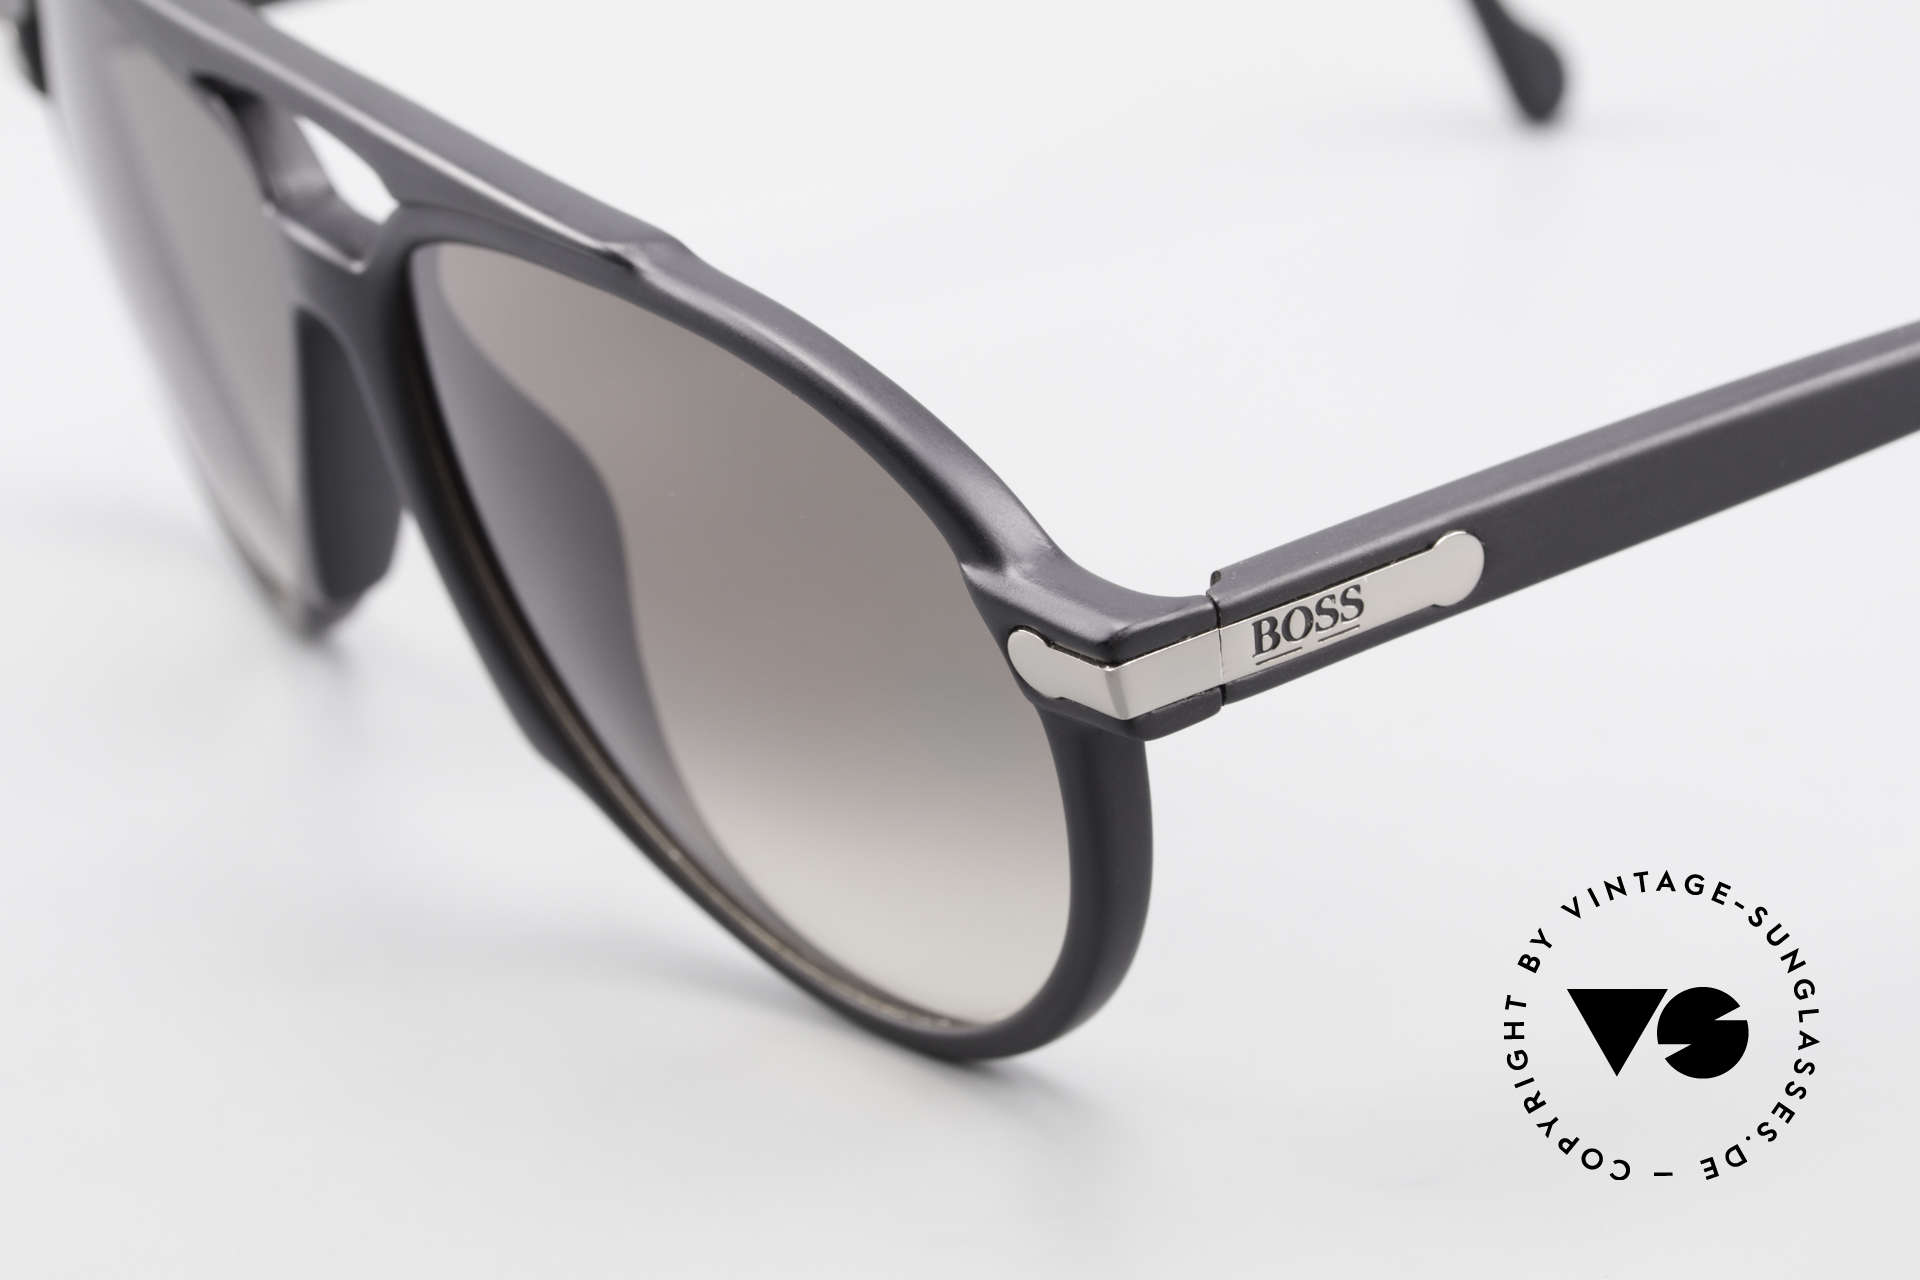 BOSS 5150 Vintage 90's Aviator Shades, lightweight & very comfortable (Optyl material), Made for Men and Women